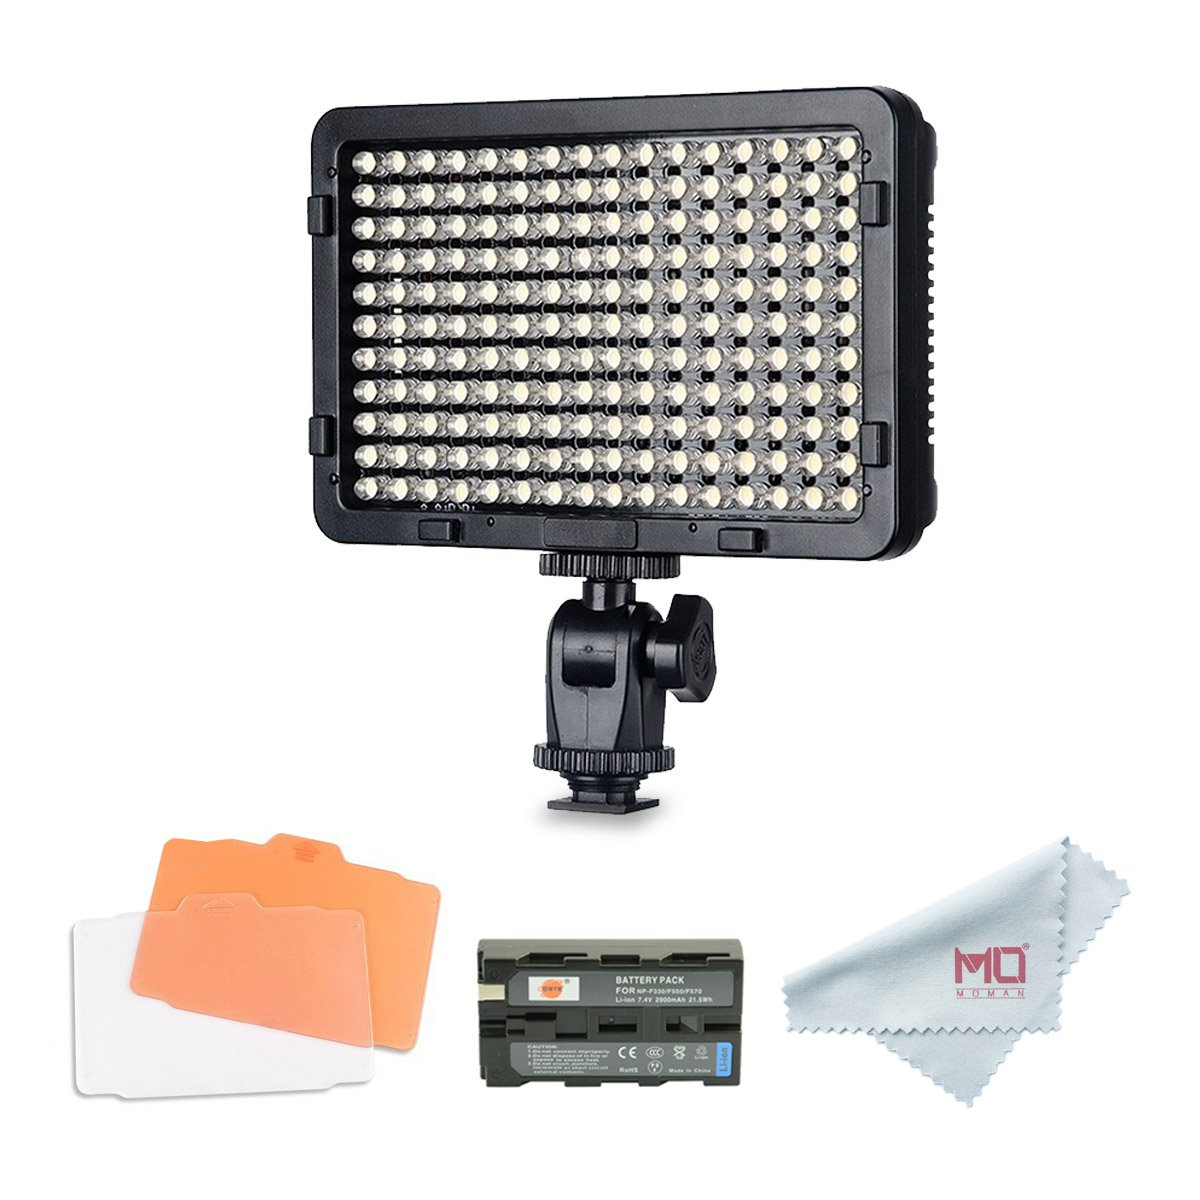 Tolifo Pt-176S LED Video Light Panel, Dimmable Ultra Thin Digital Camera Camcorder Video Light Studio Lighting … … Pt-0176S